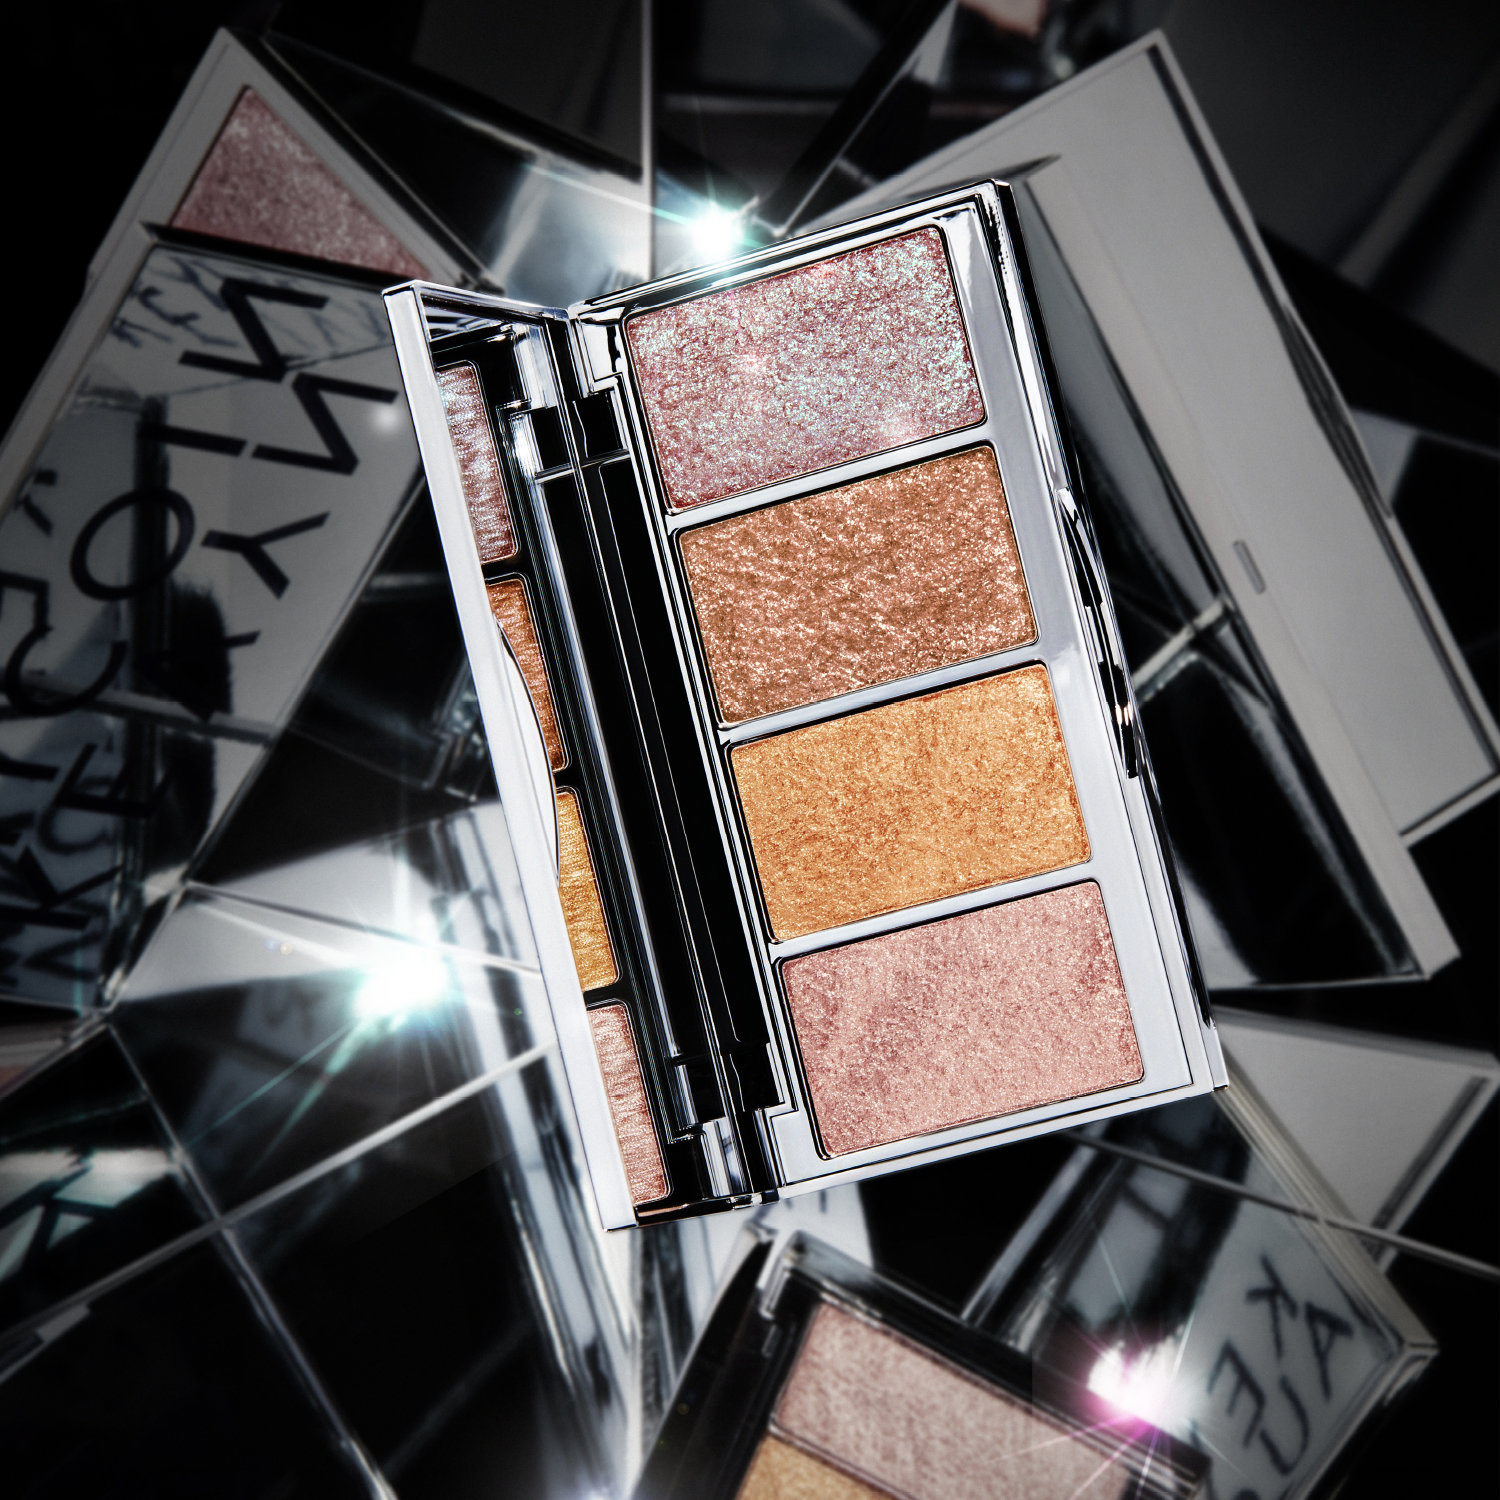 Alternate product image for Kaleidochrome All Over Highlight Palette shown with the description.